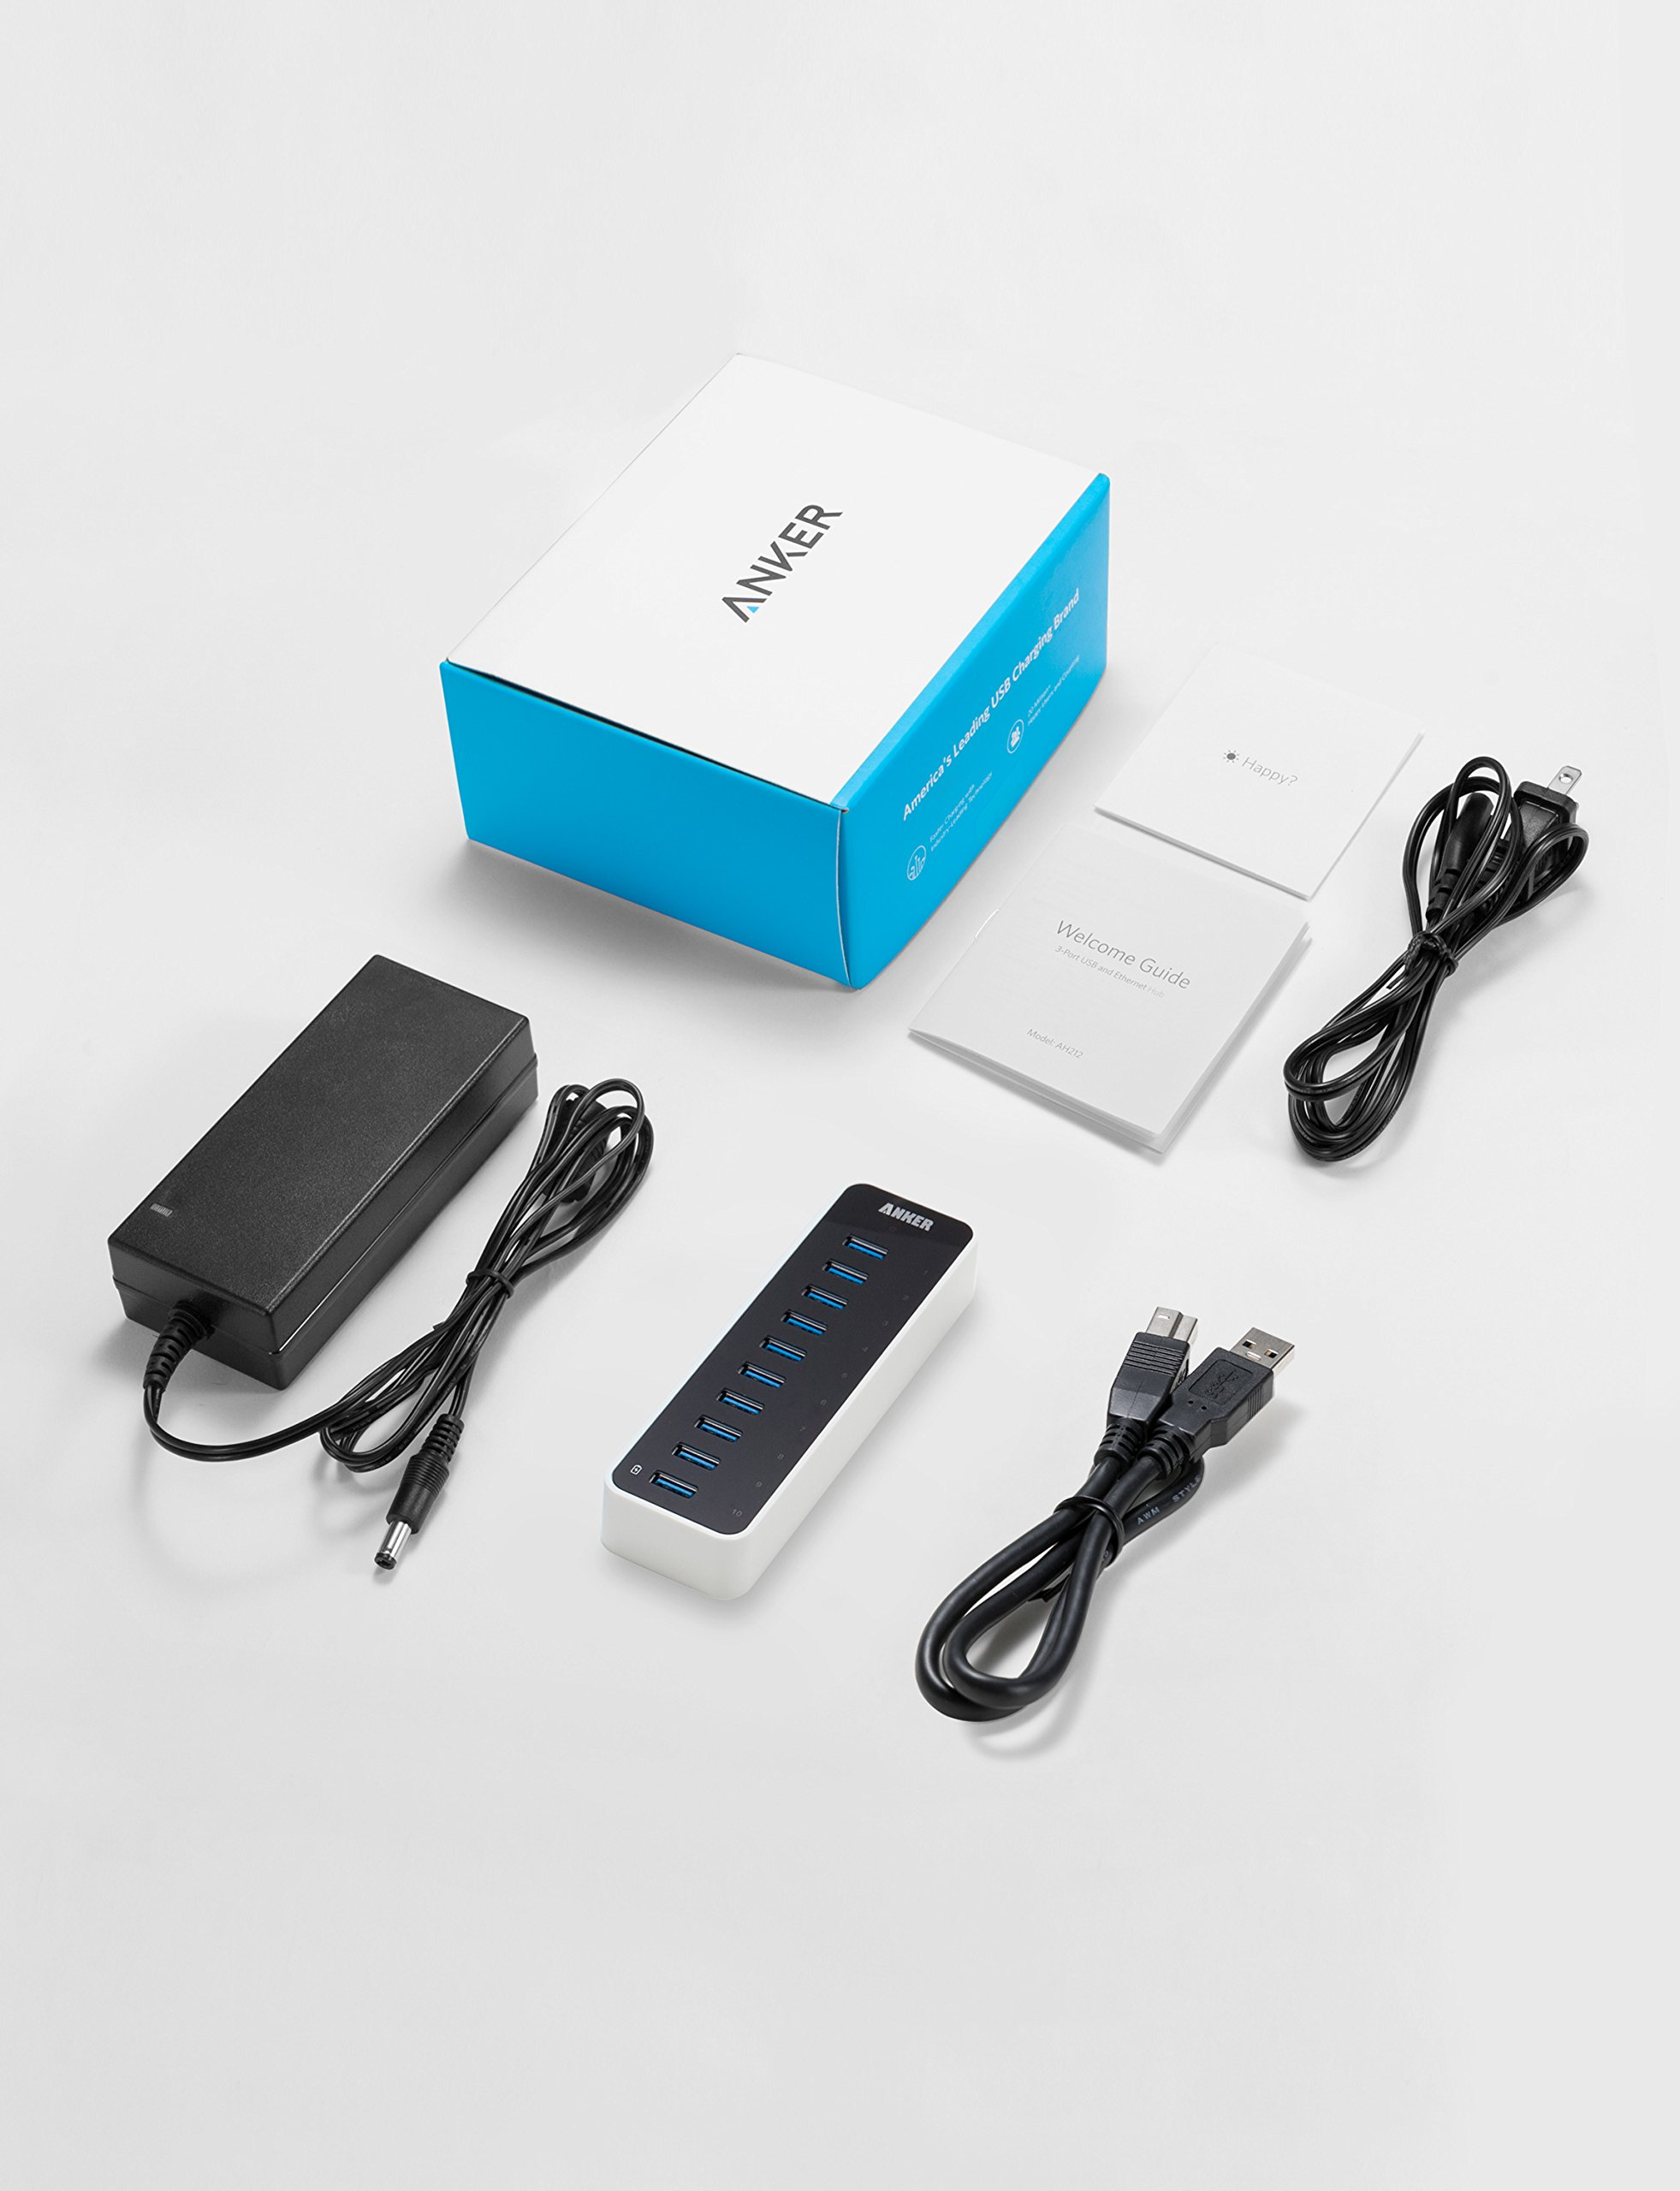 Anker USB 3.0 9-Port Hub + 5V 2.1A Smart Charging Port with 12V 5A Power Adapter by Anker (Image #3)